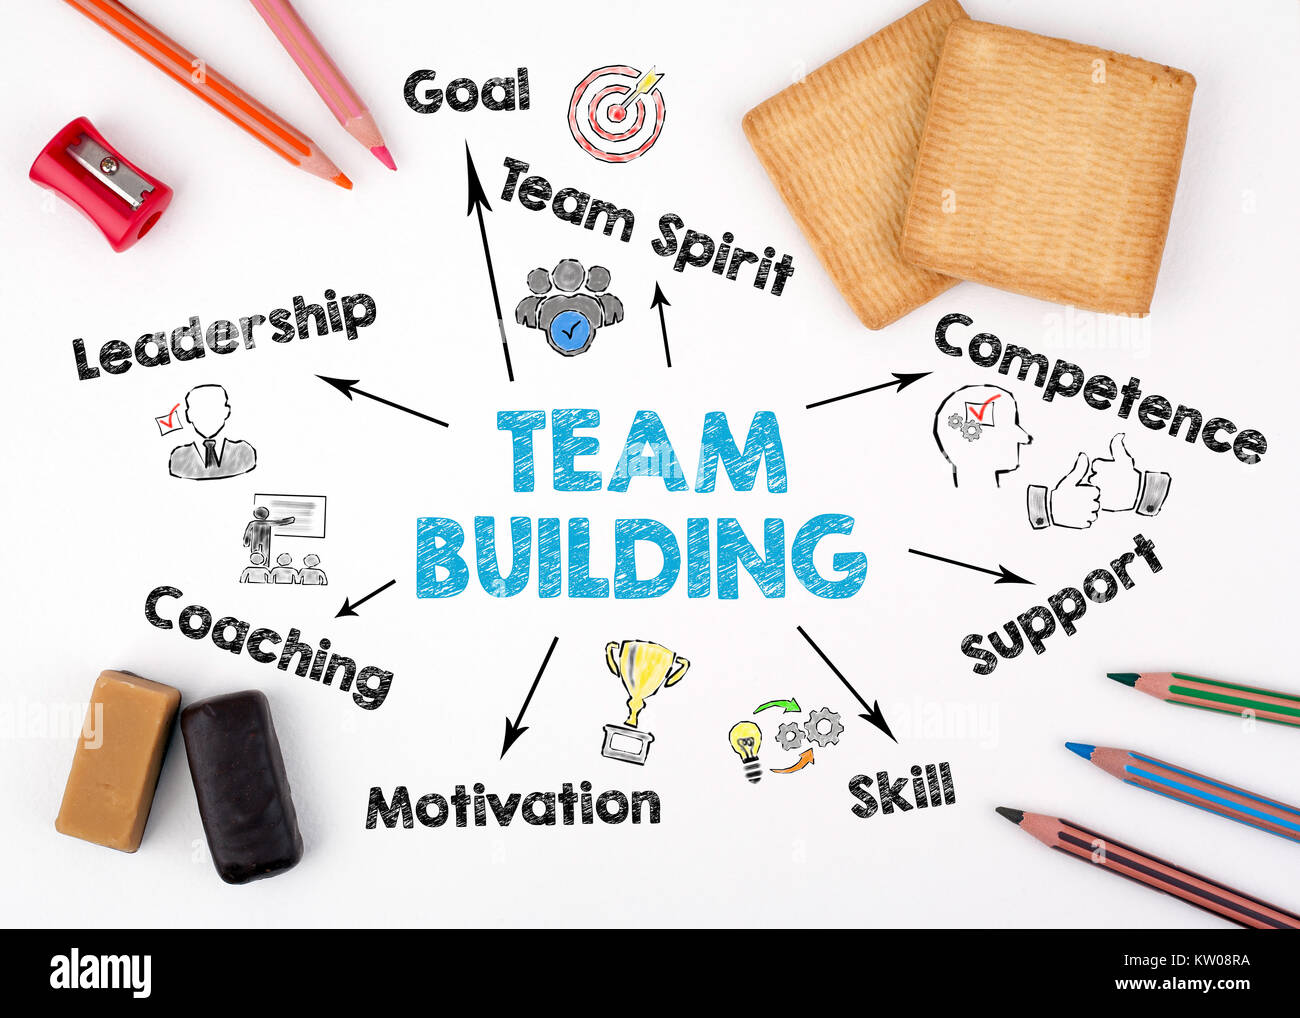 team building Concept. Chart with keywords and icons. The sheet of paper with pencils and sweets - Stock Image